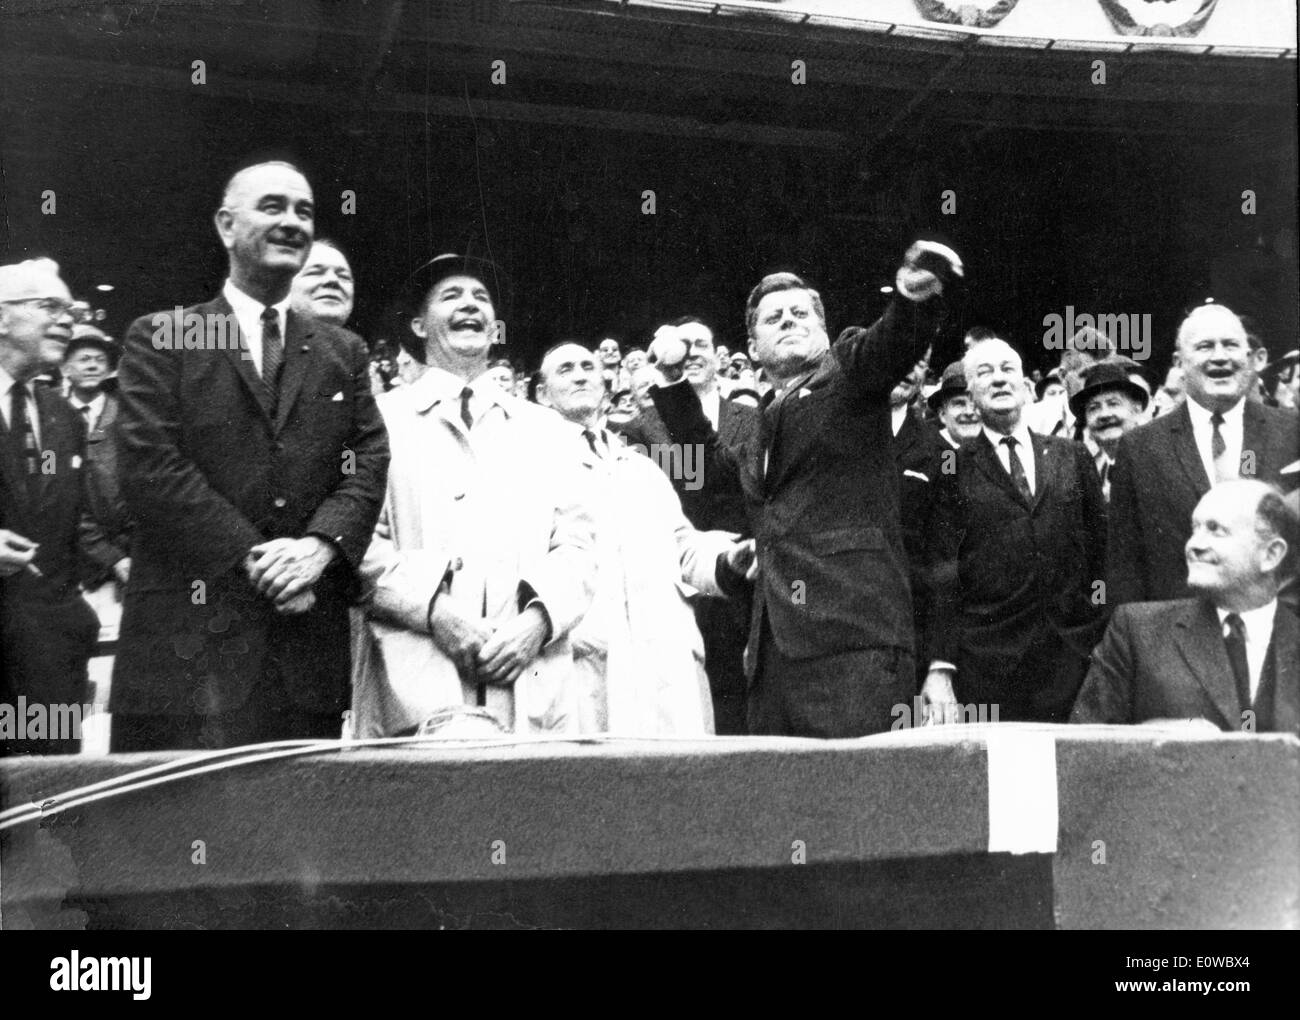 President Kennedy throws the first pitch as President Johnson watches - Stock Image